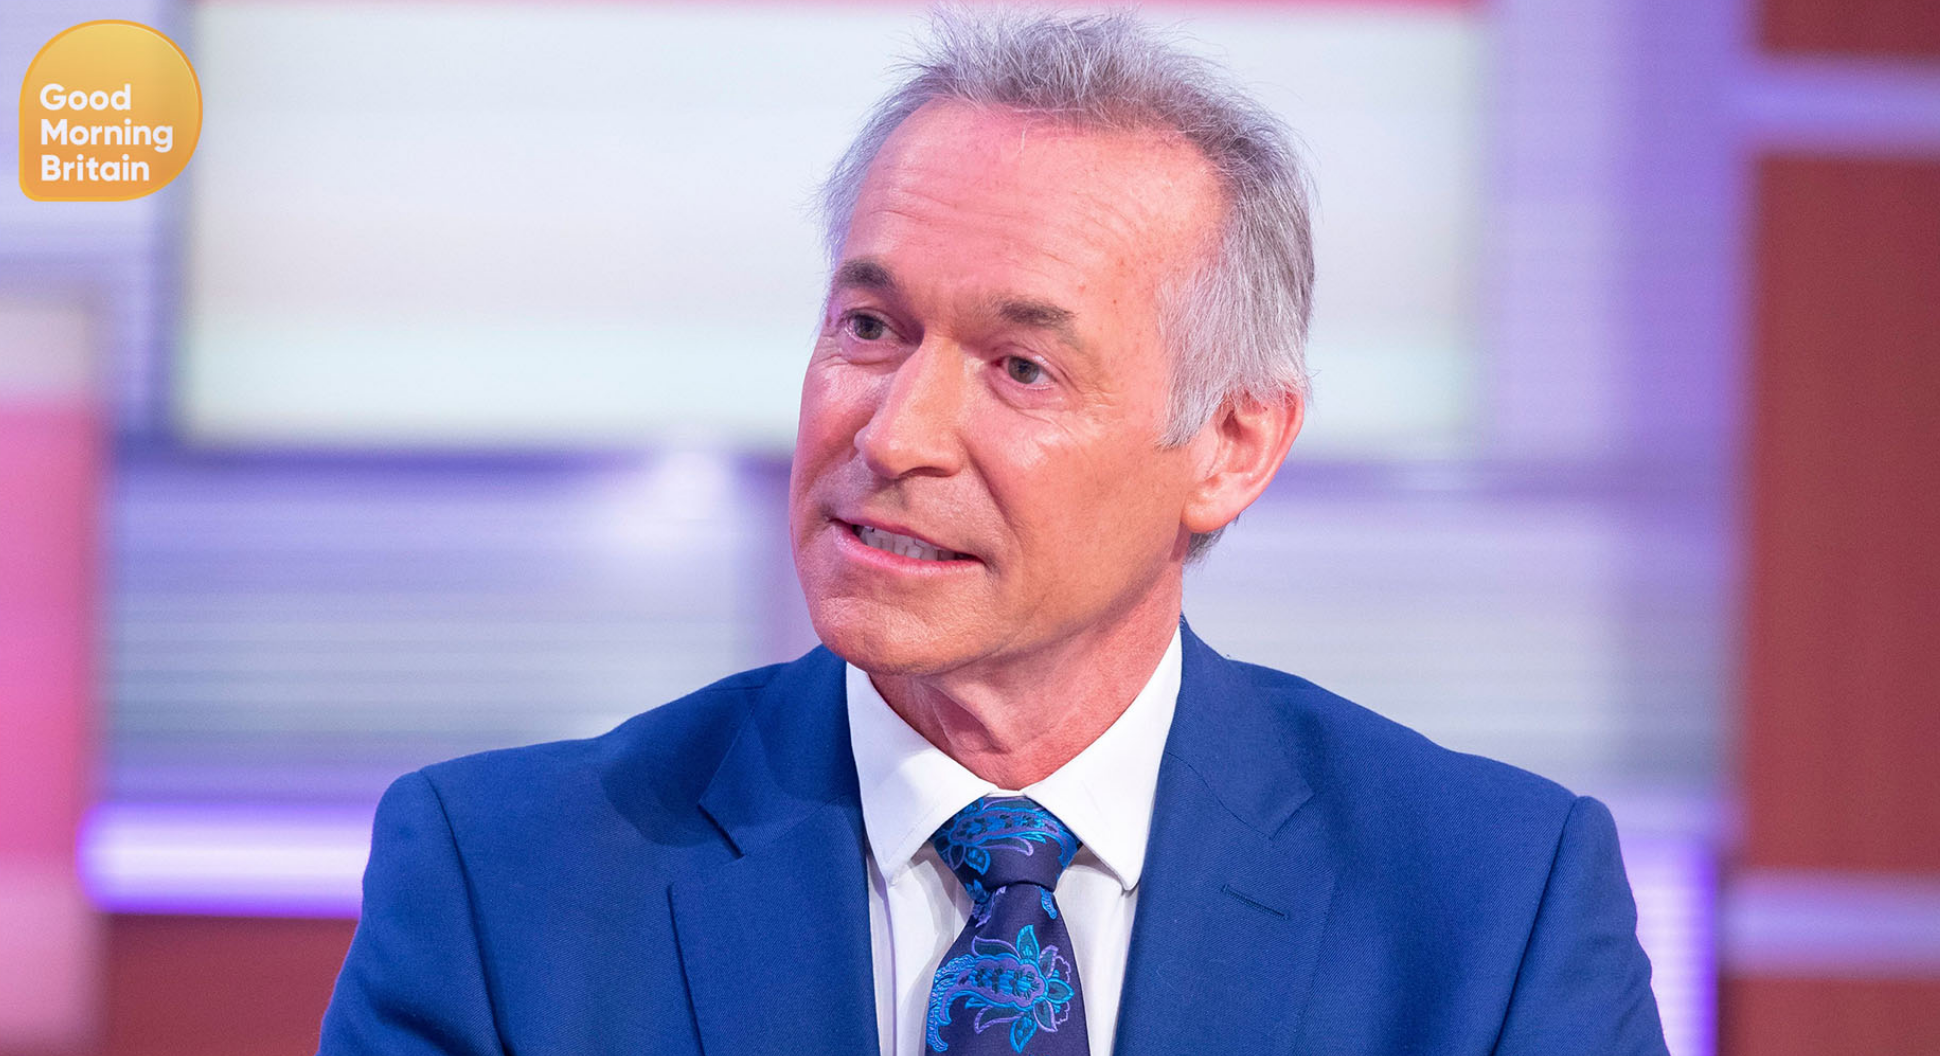 5 HUGE coronavirus questions answered by Dr Hilary Jones on Good Morning Britain